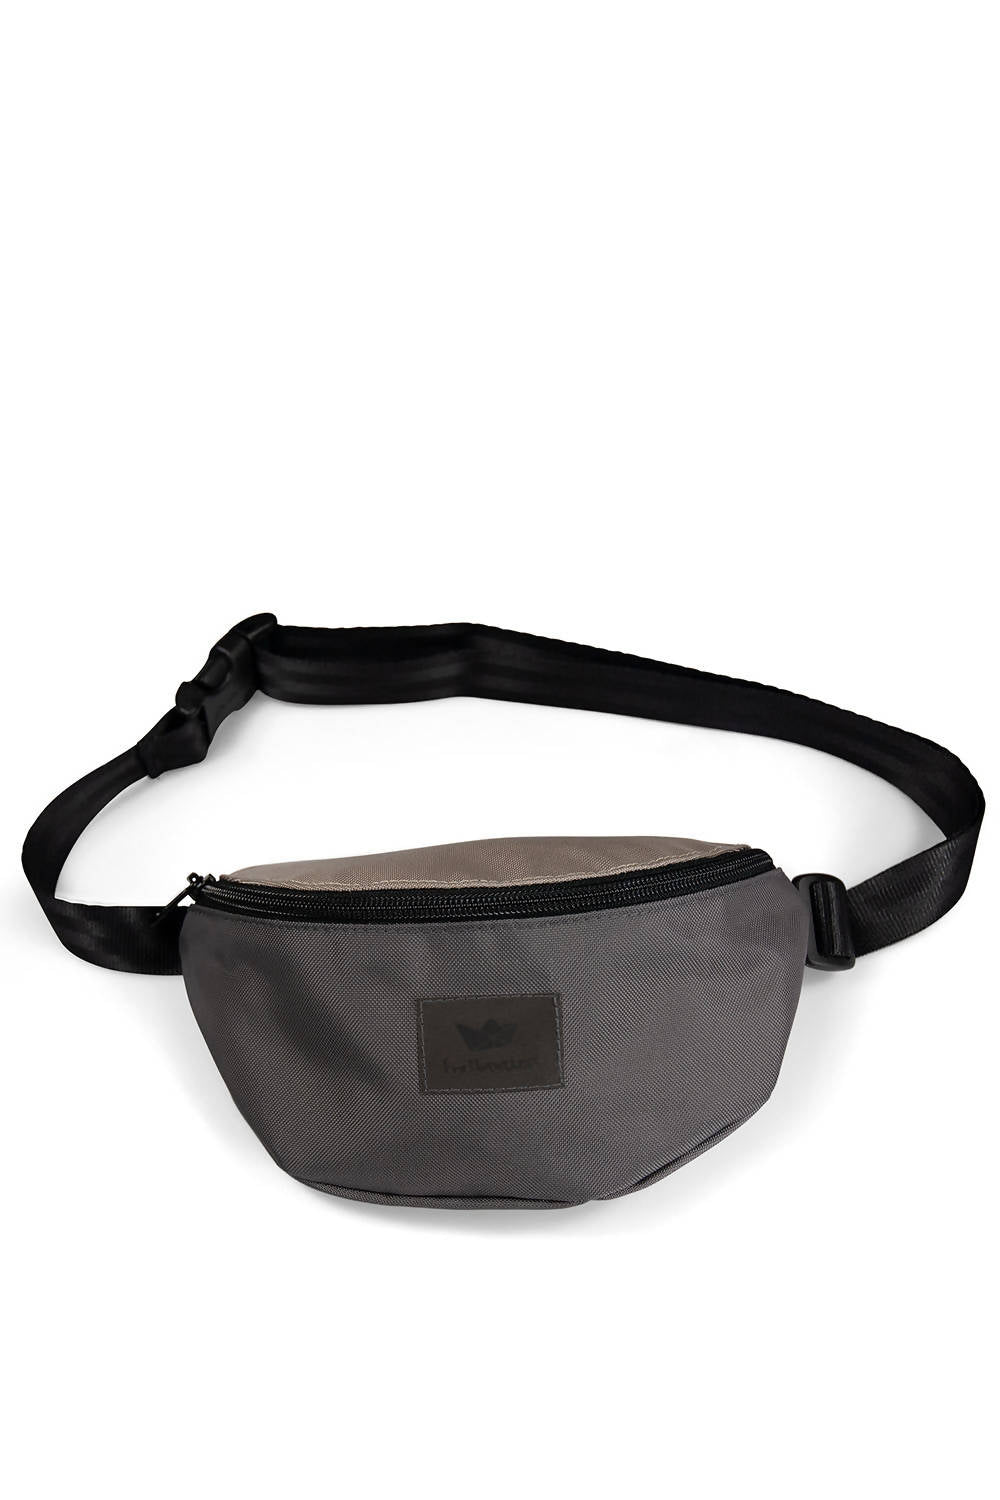 Hip Bag - Black Strap